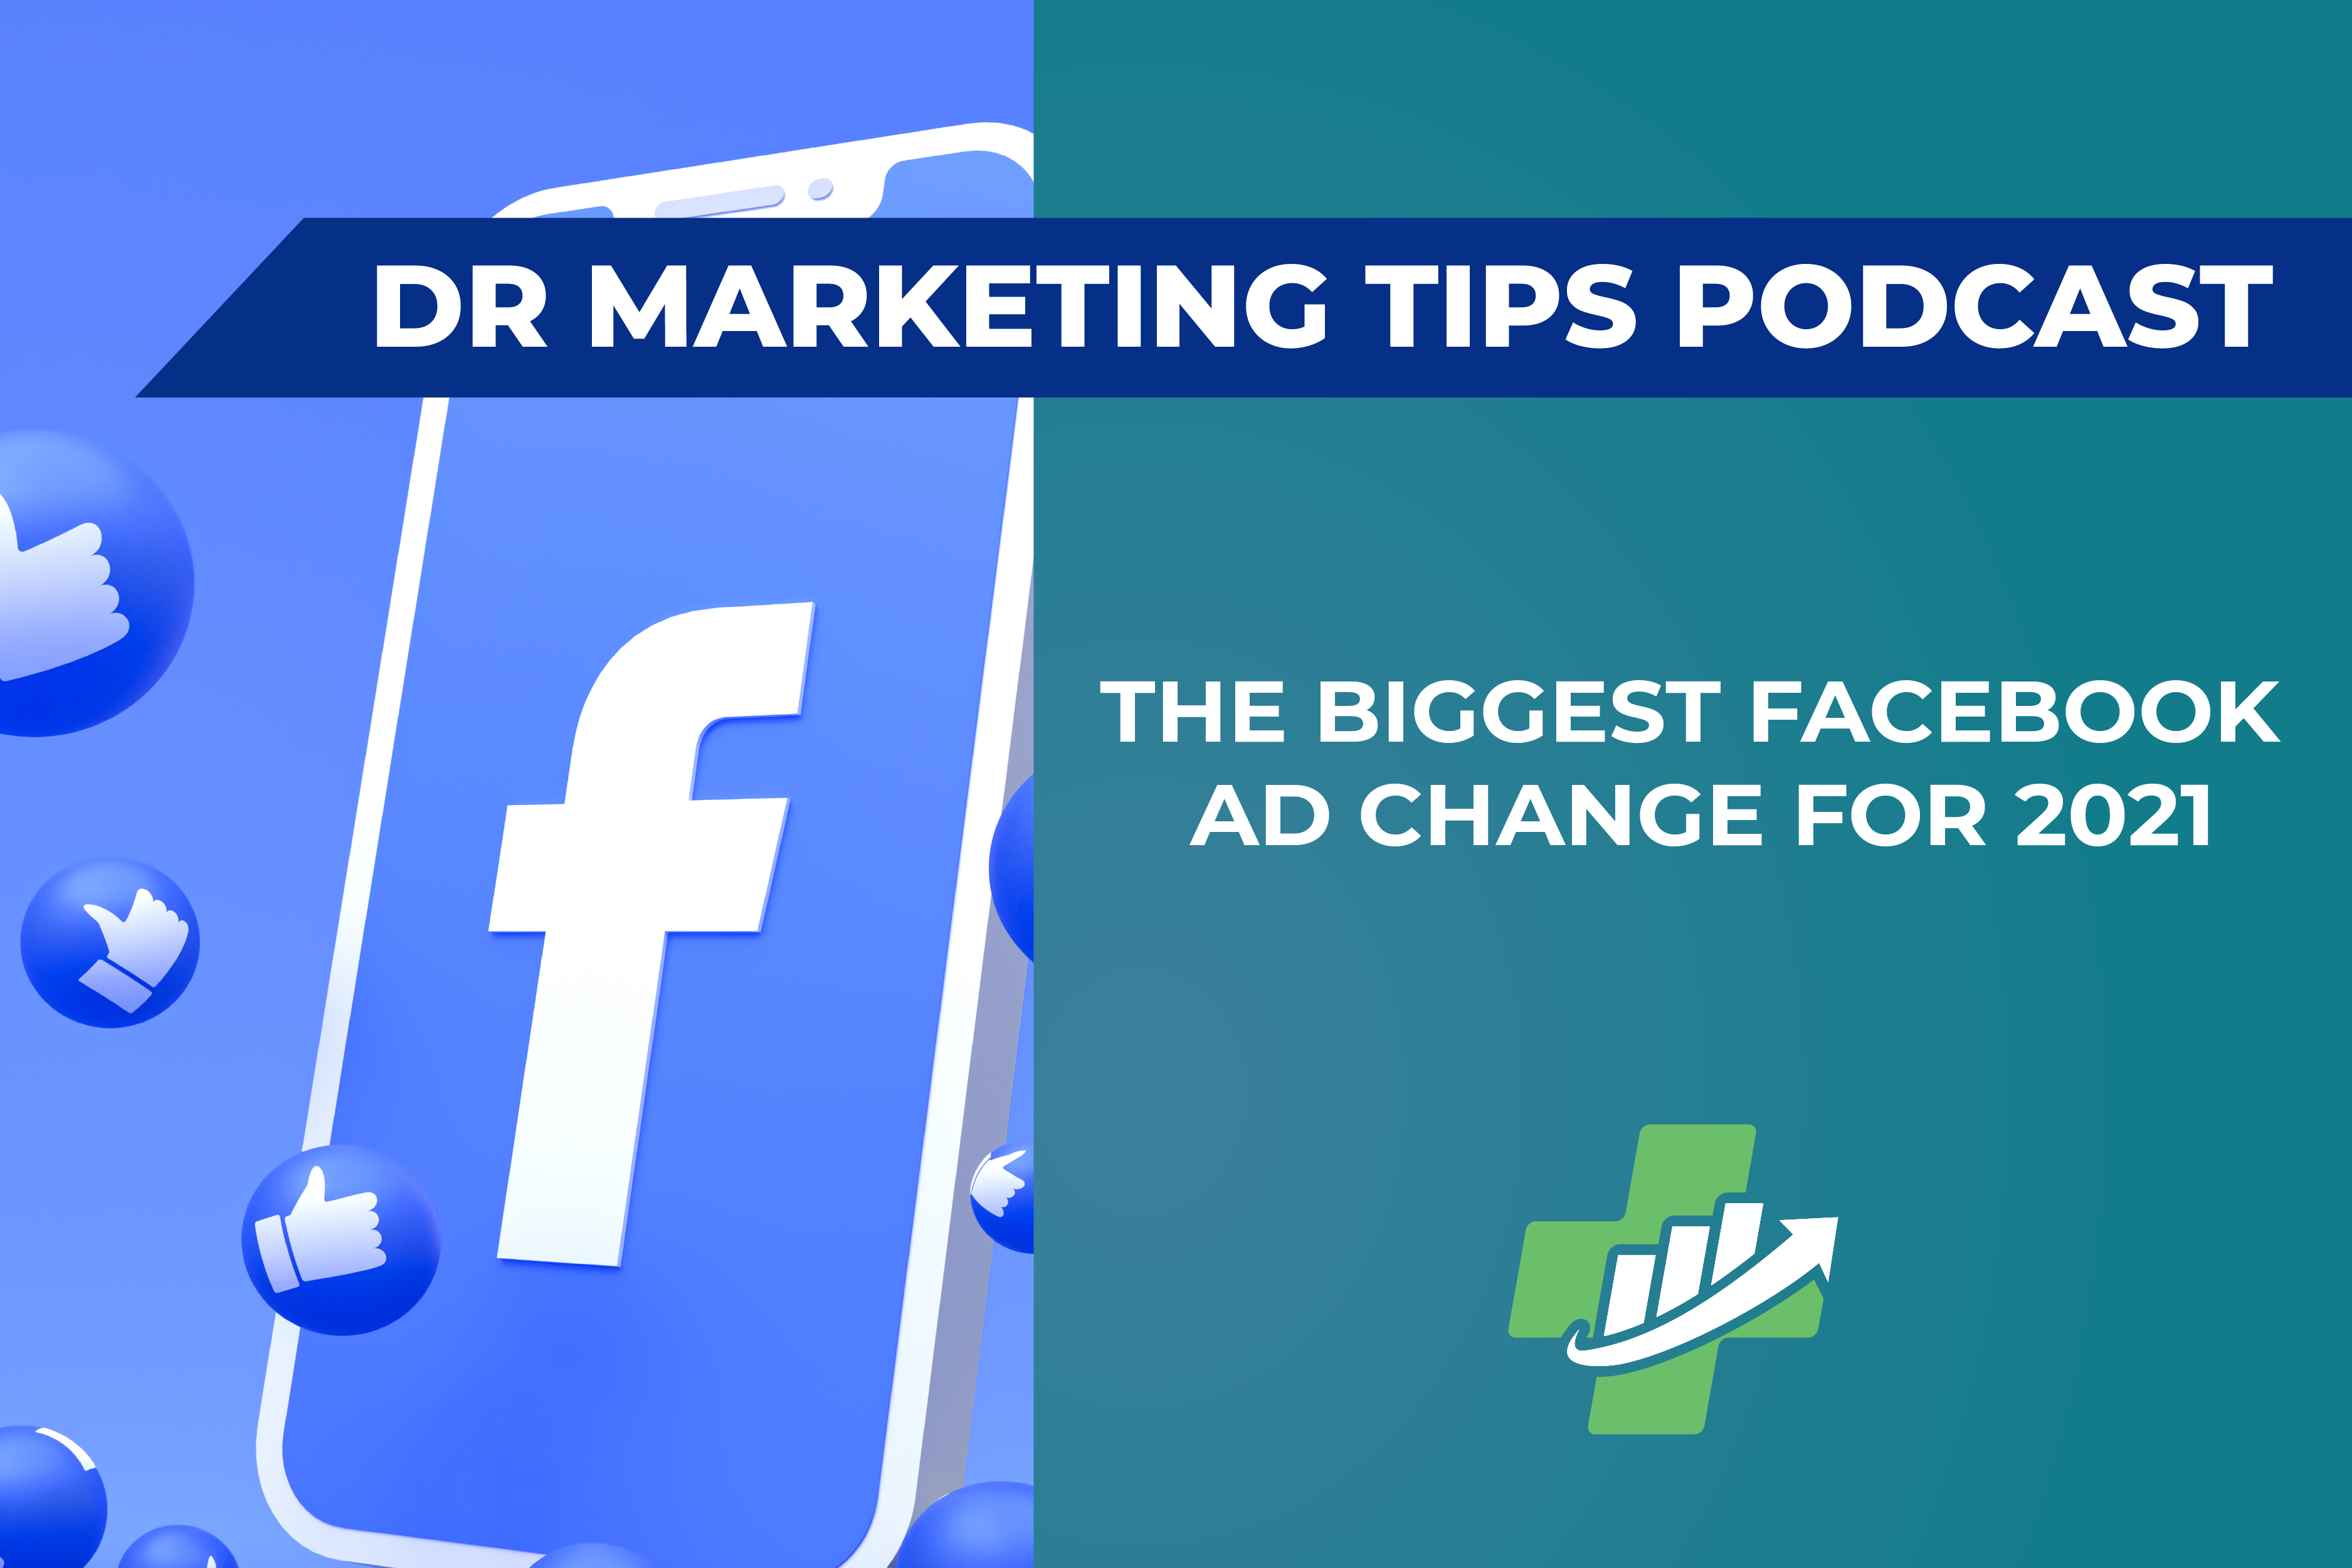 The Biggest Facebook Ad Change for 2021